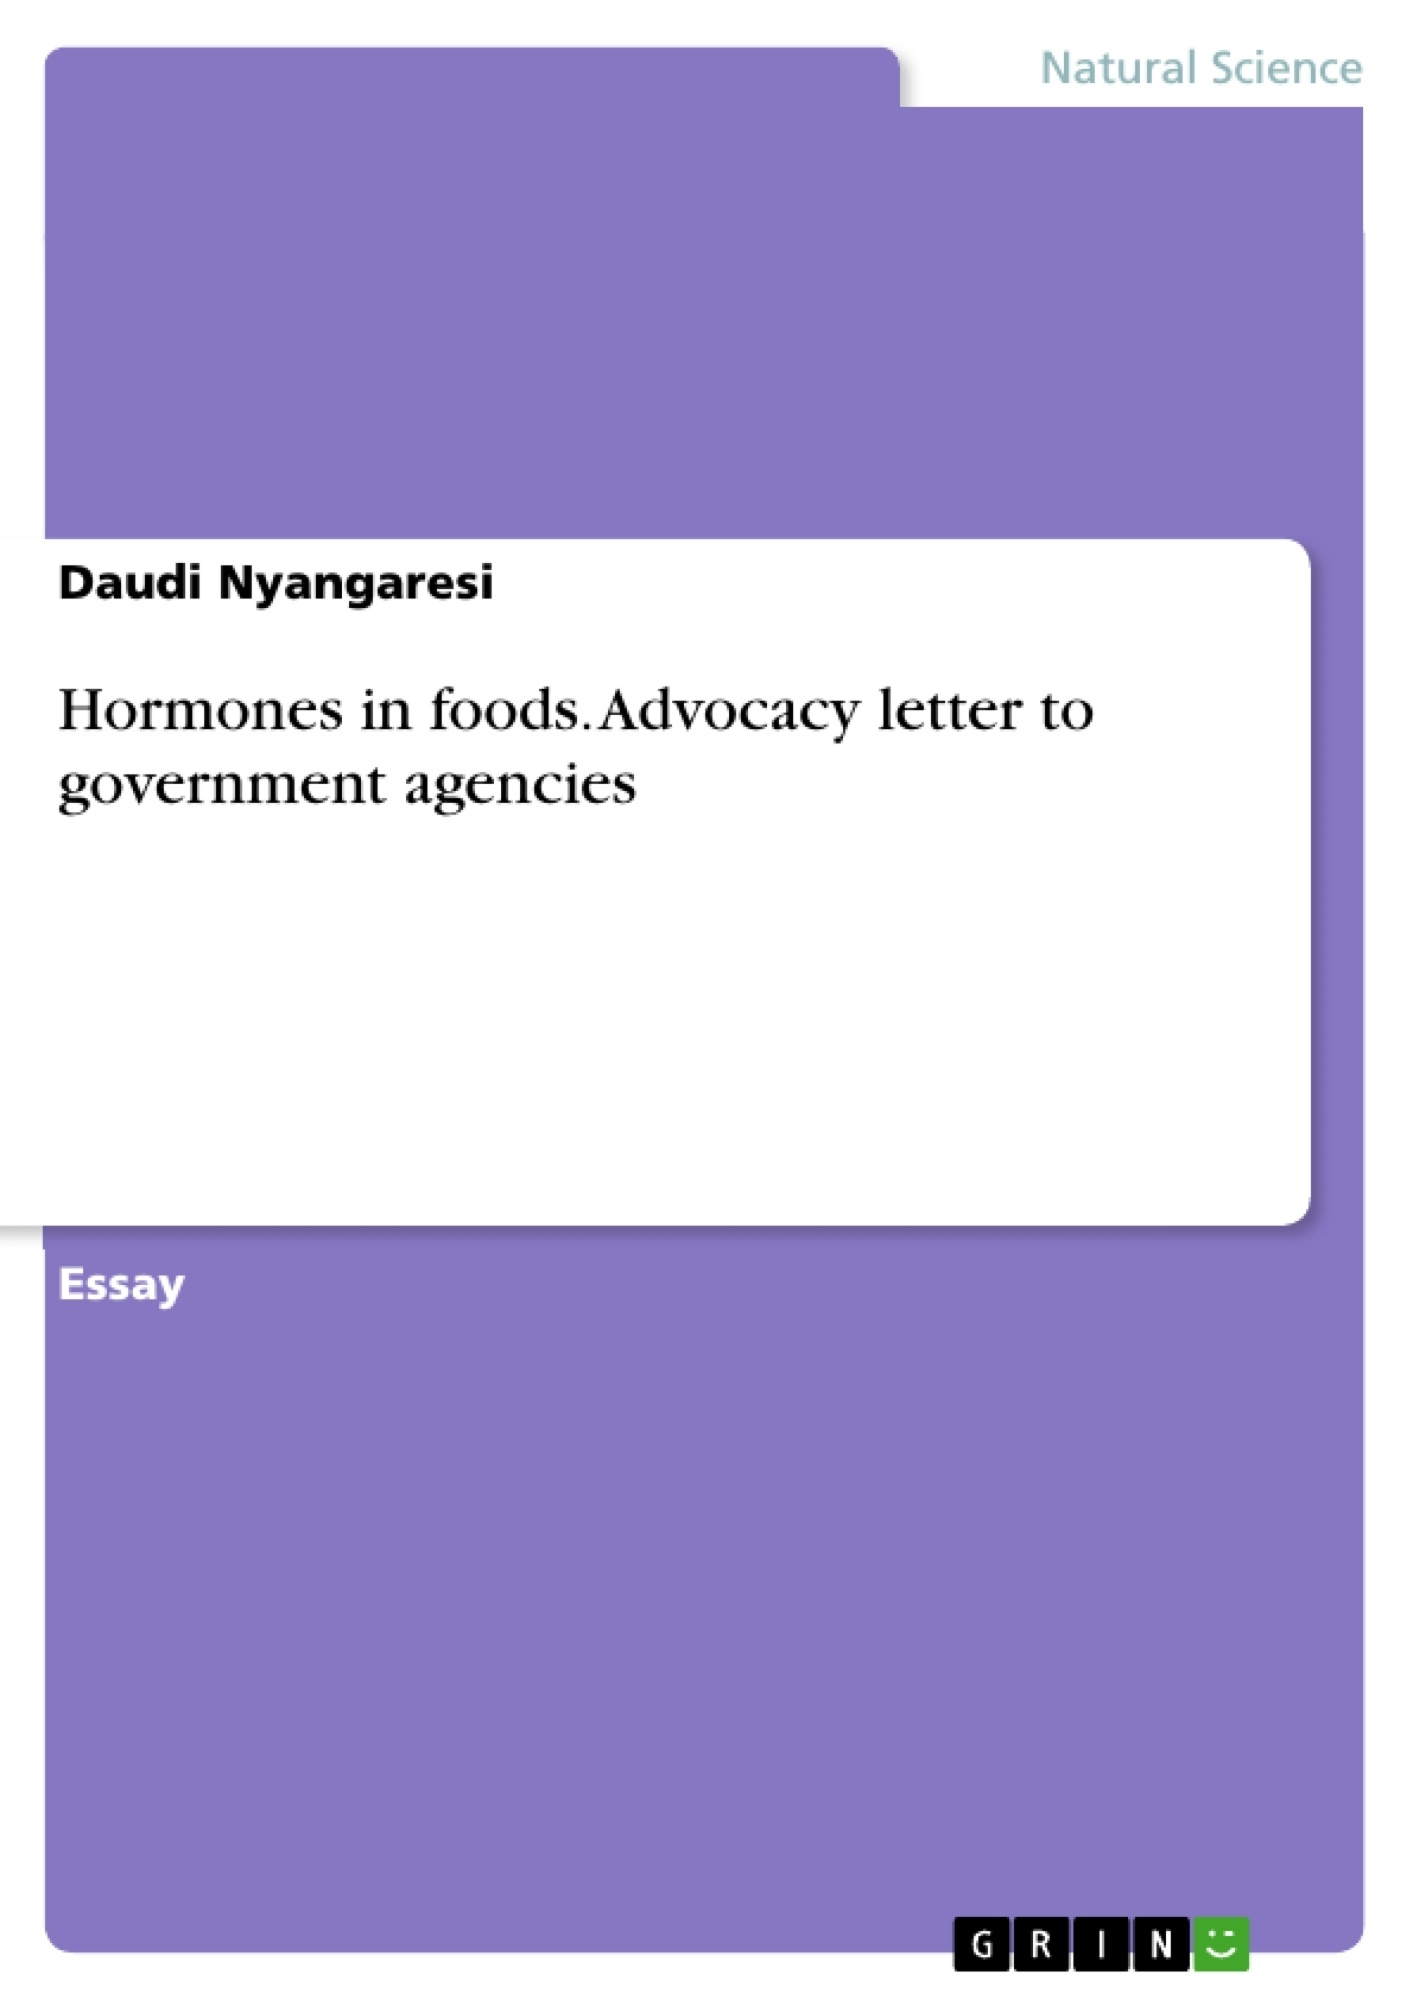 Title: Hormones in foods. Advocacy letter to government agencies